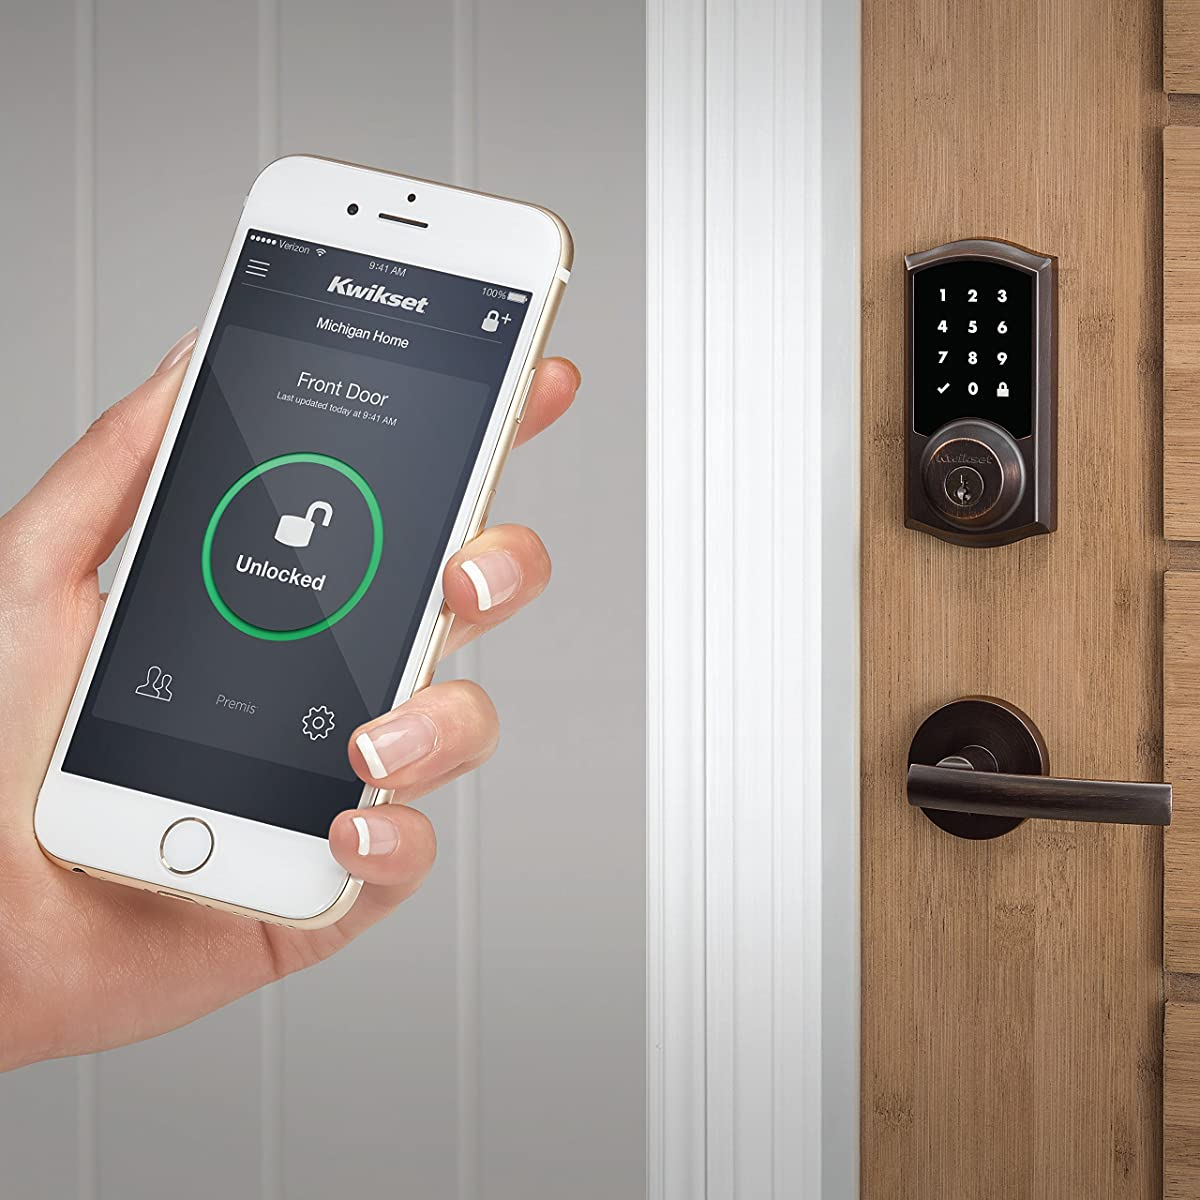 Kwikset Premis Touchscreen Smart Lock Works With Apple